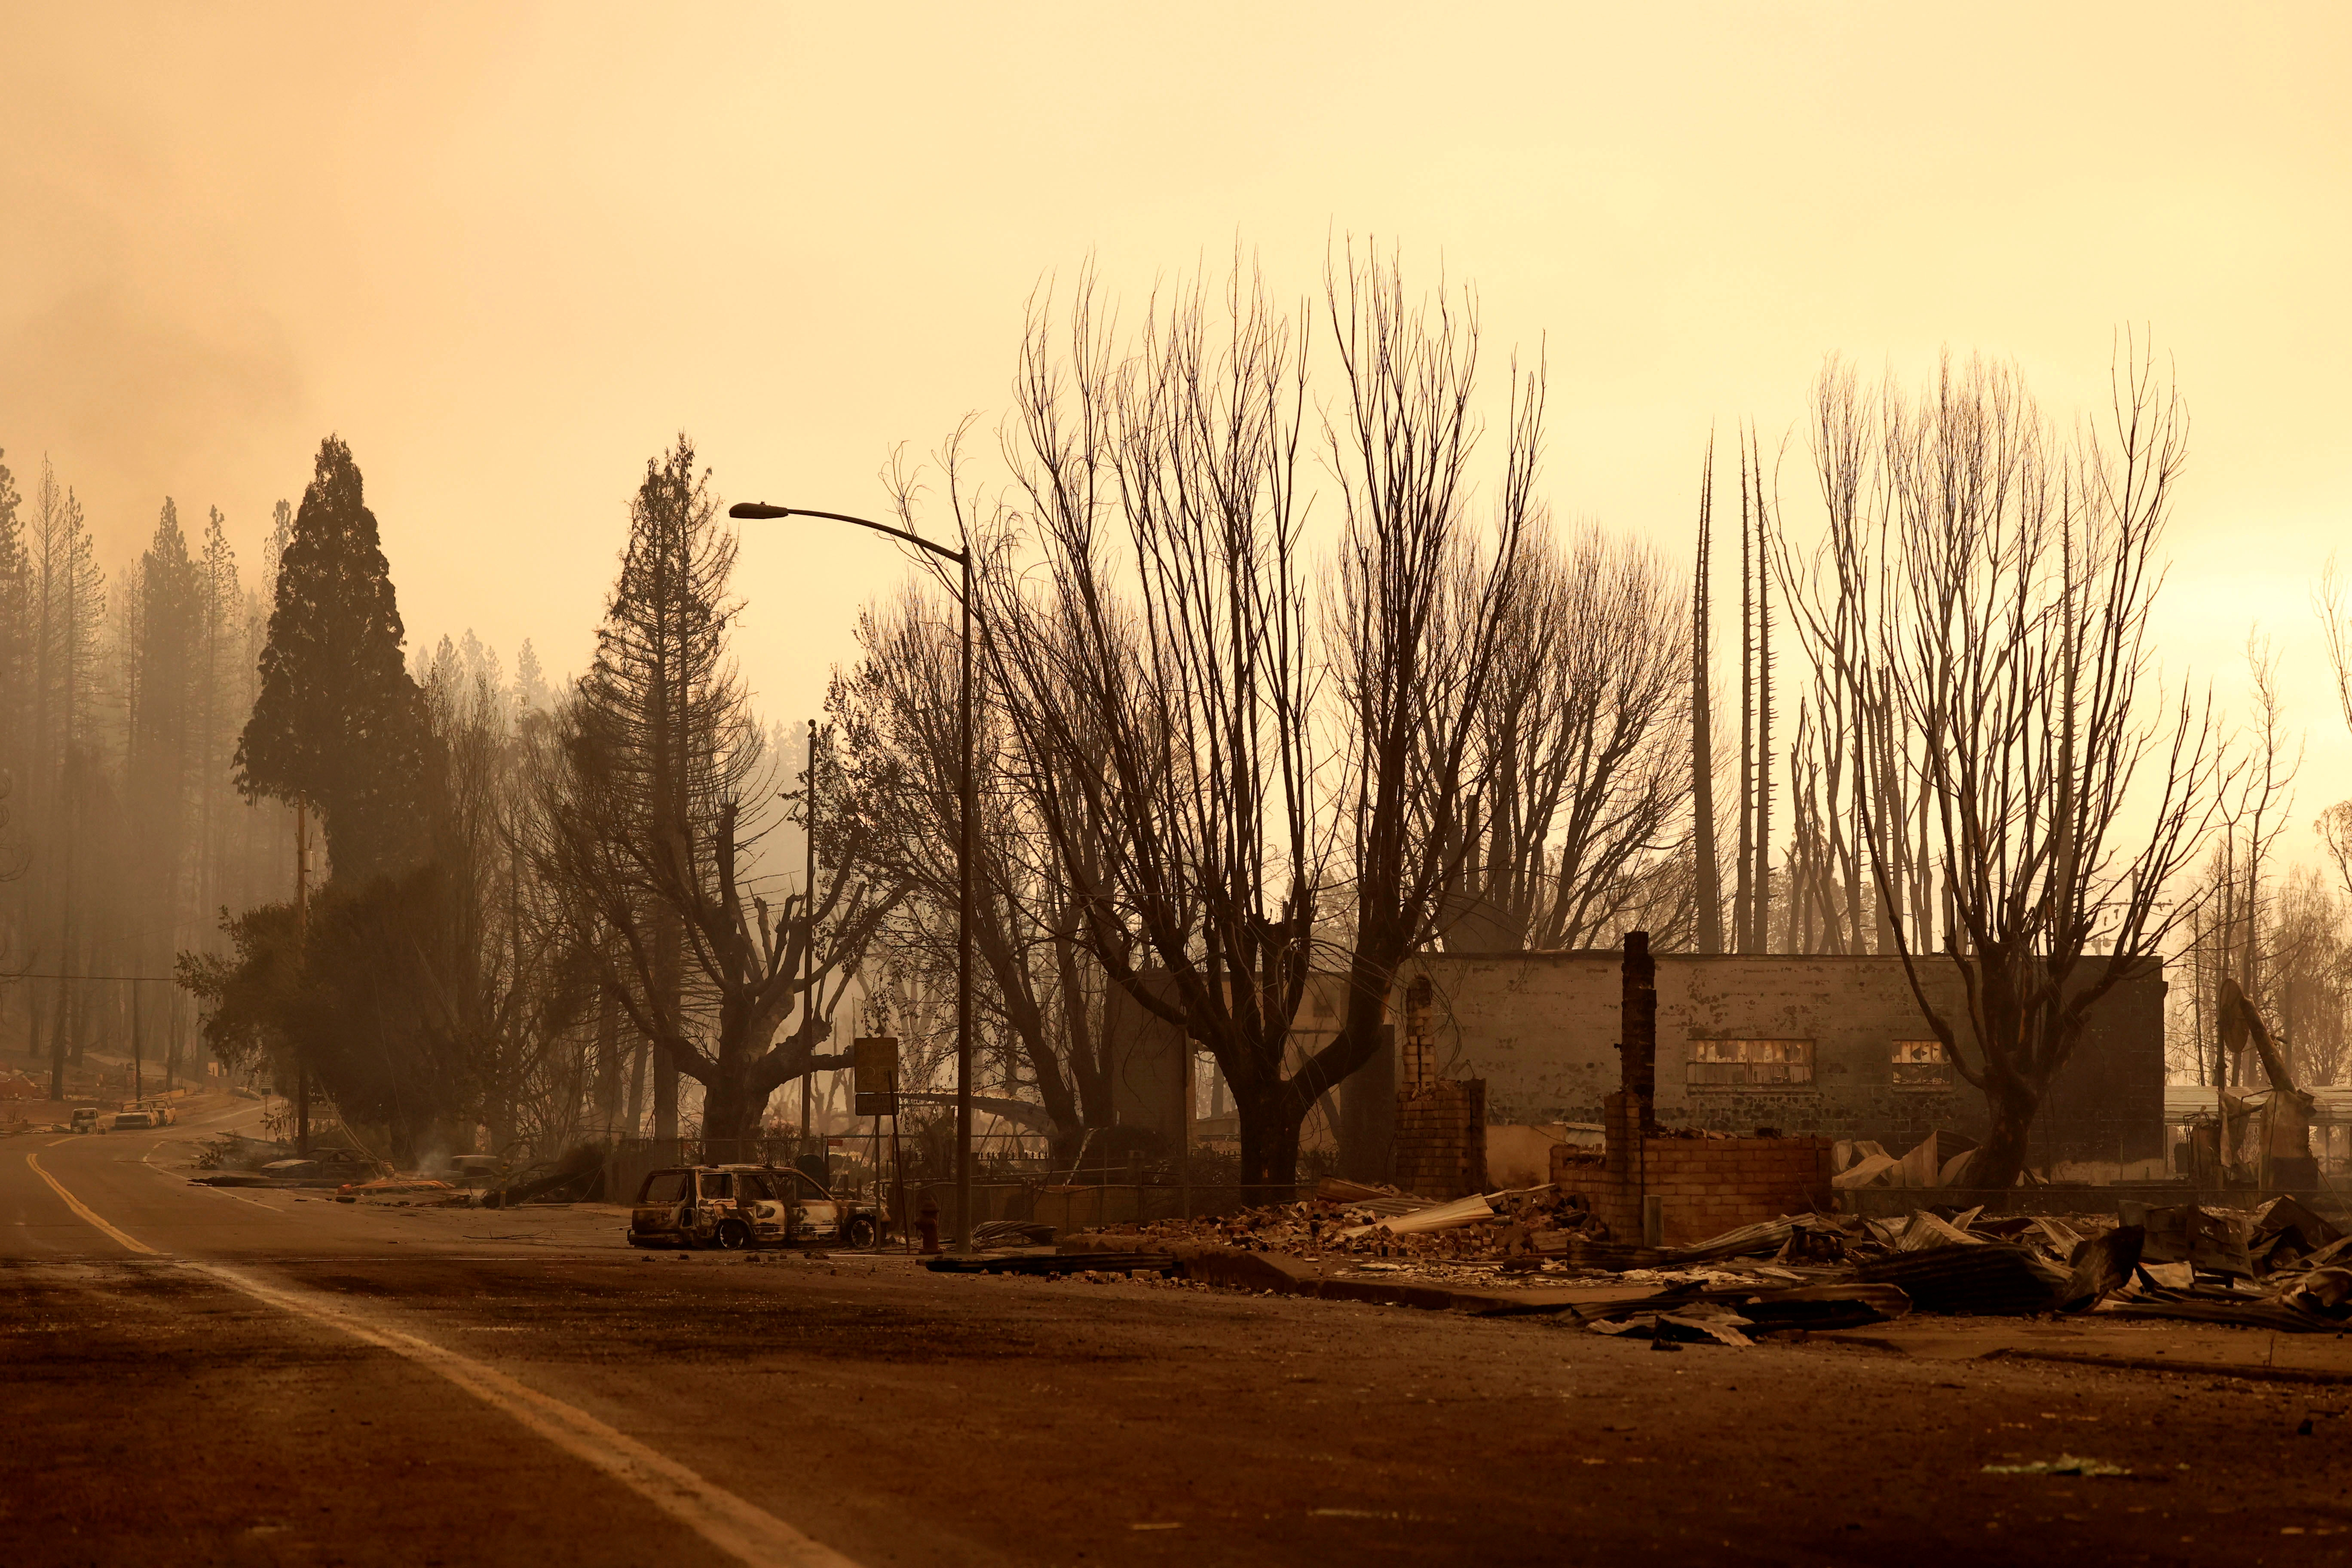 View of burned buildings and trees following the Dixie Fire, a wildfire that tore through the town of Greenville, California, U.S. August 5, 2021. REUTERS/Fred Greaves